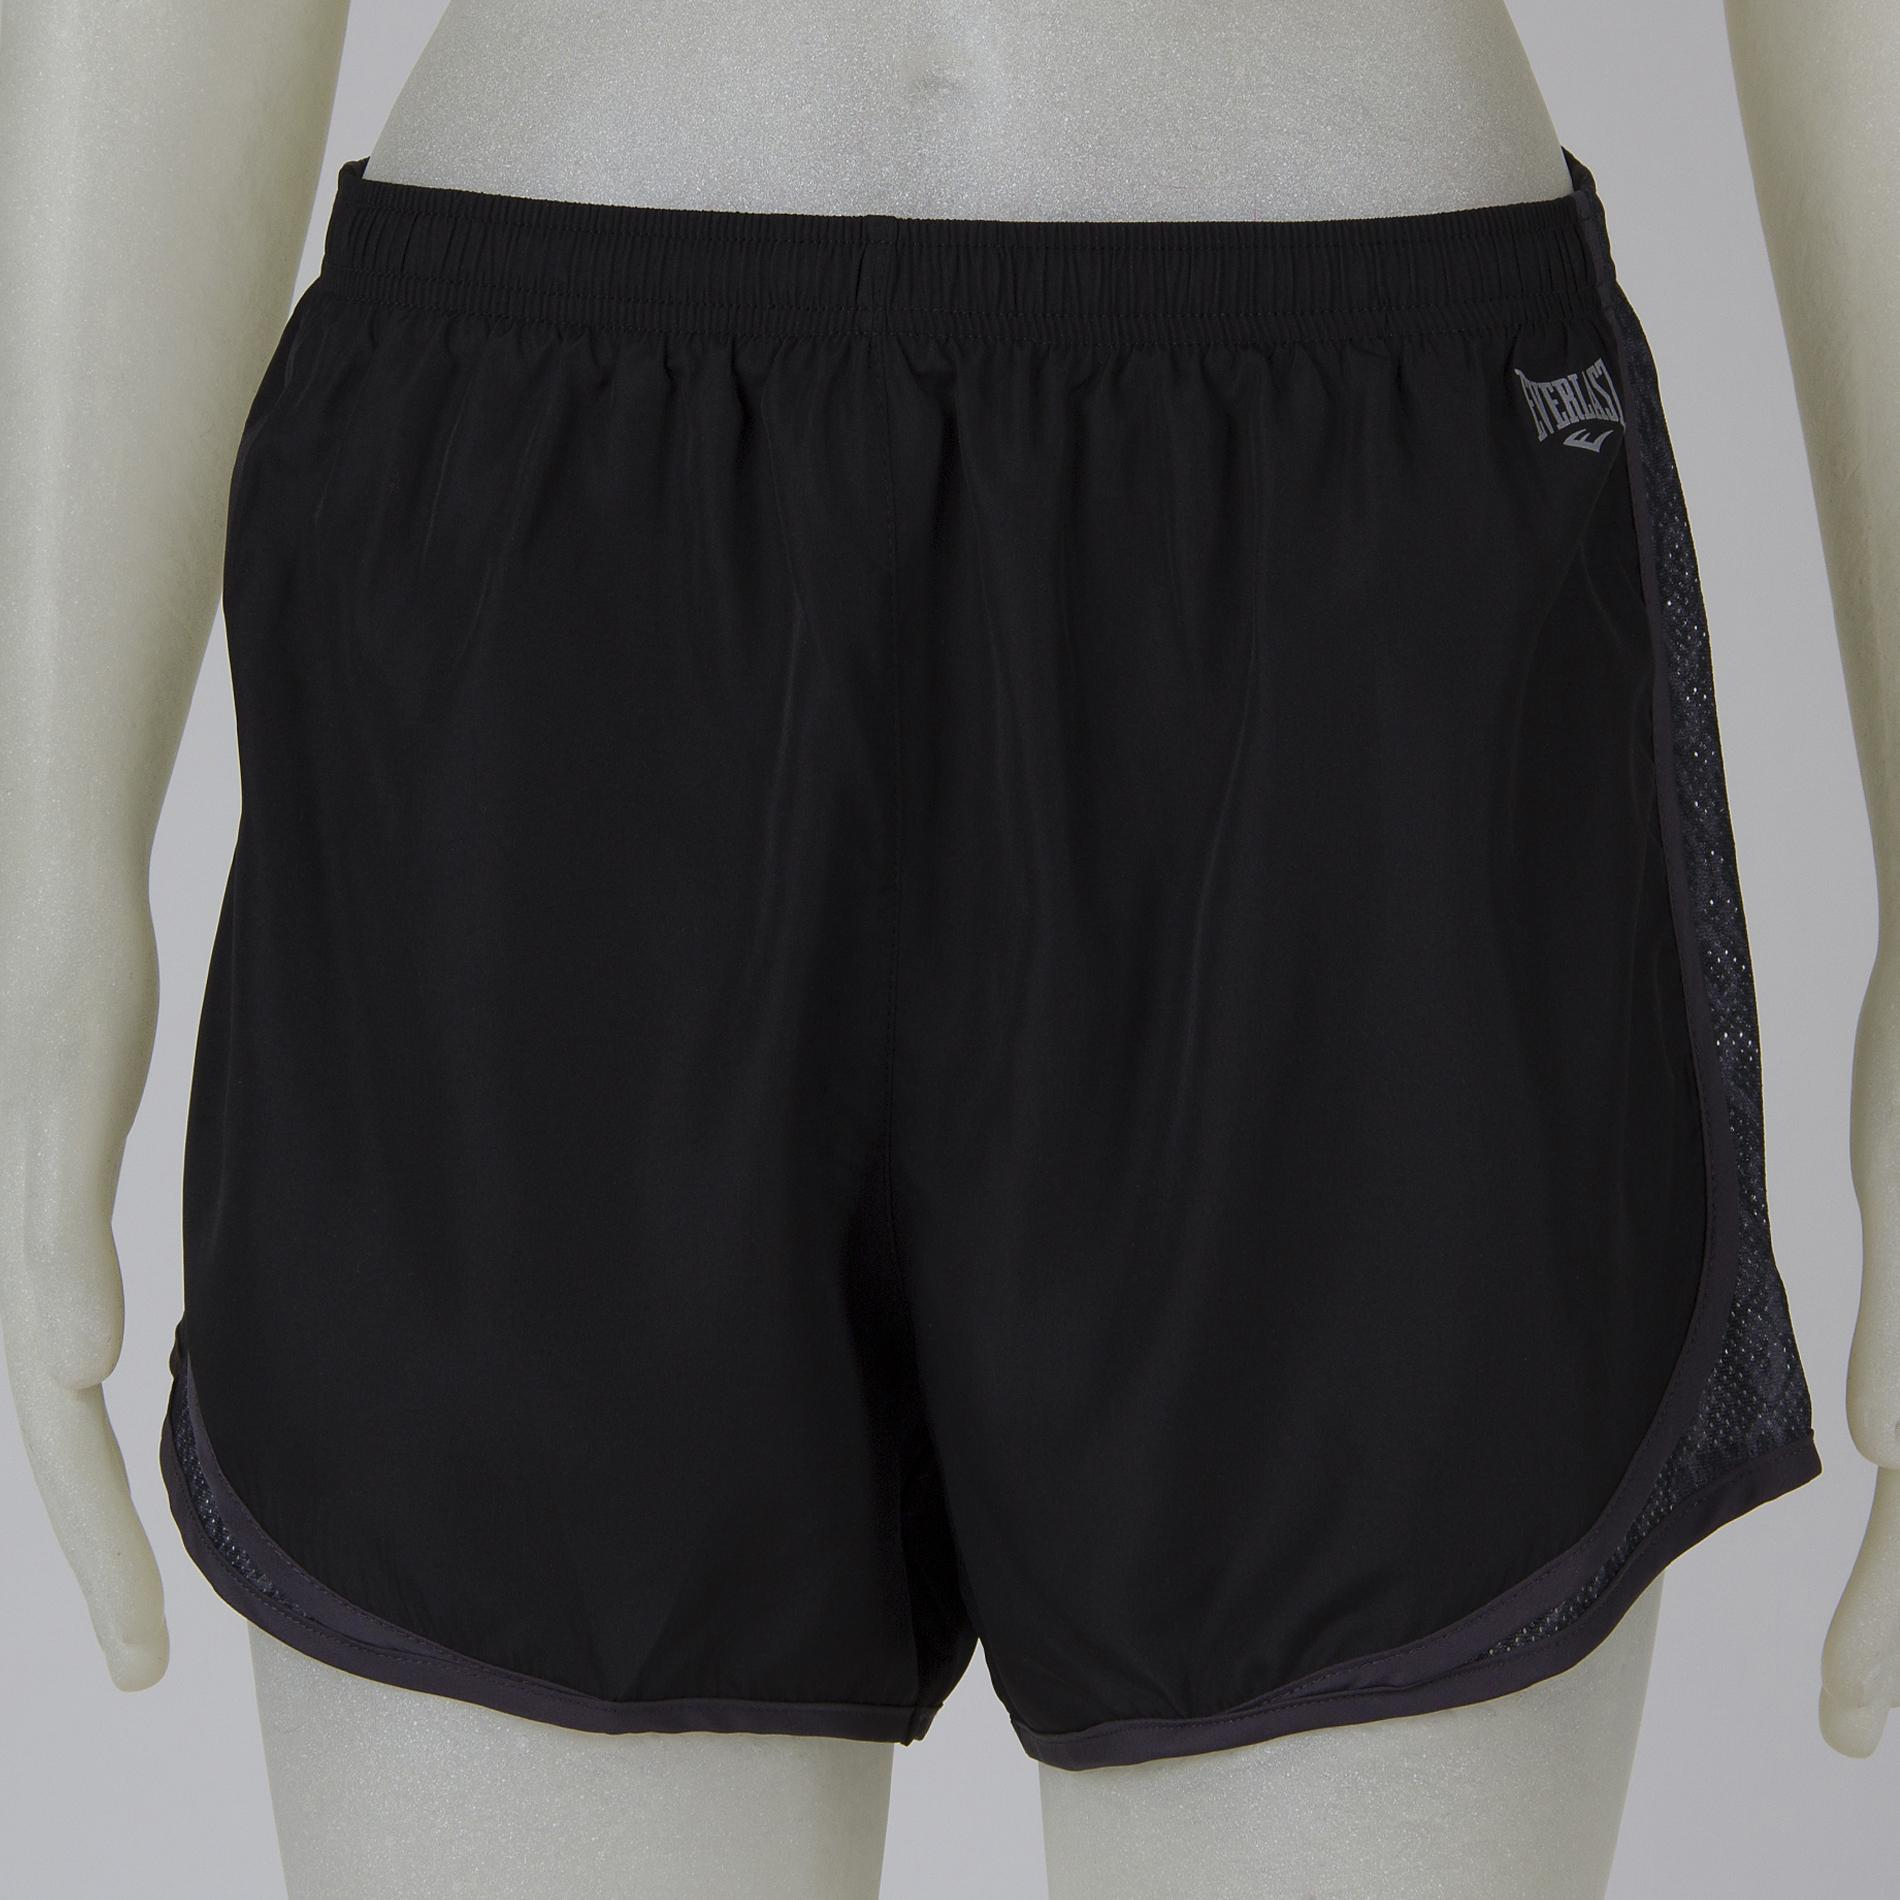 Everlast® Women's Athletic Shorts - Animal Print Mesh at Sears.com